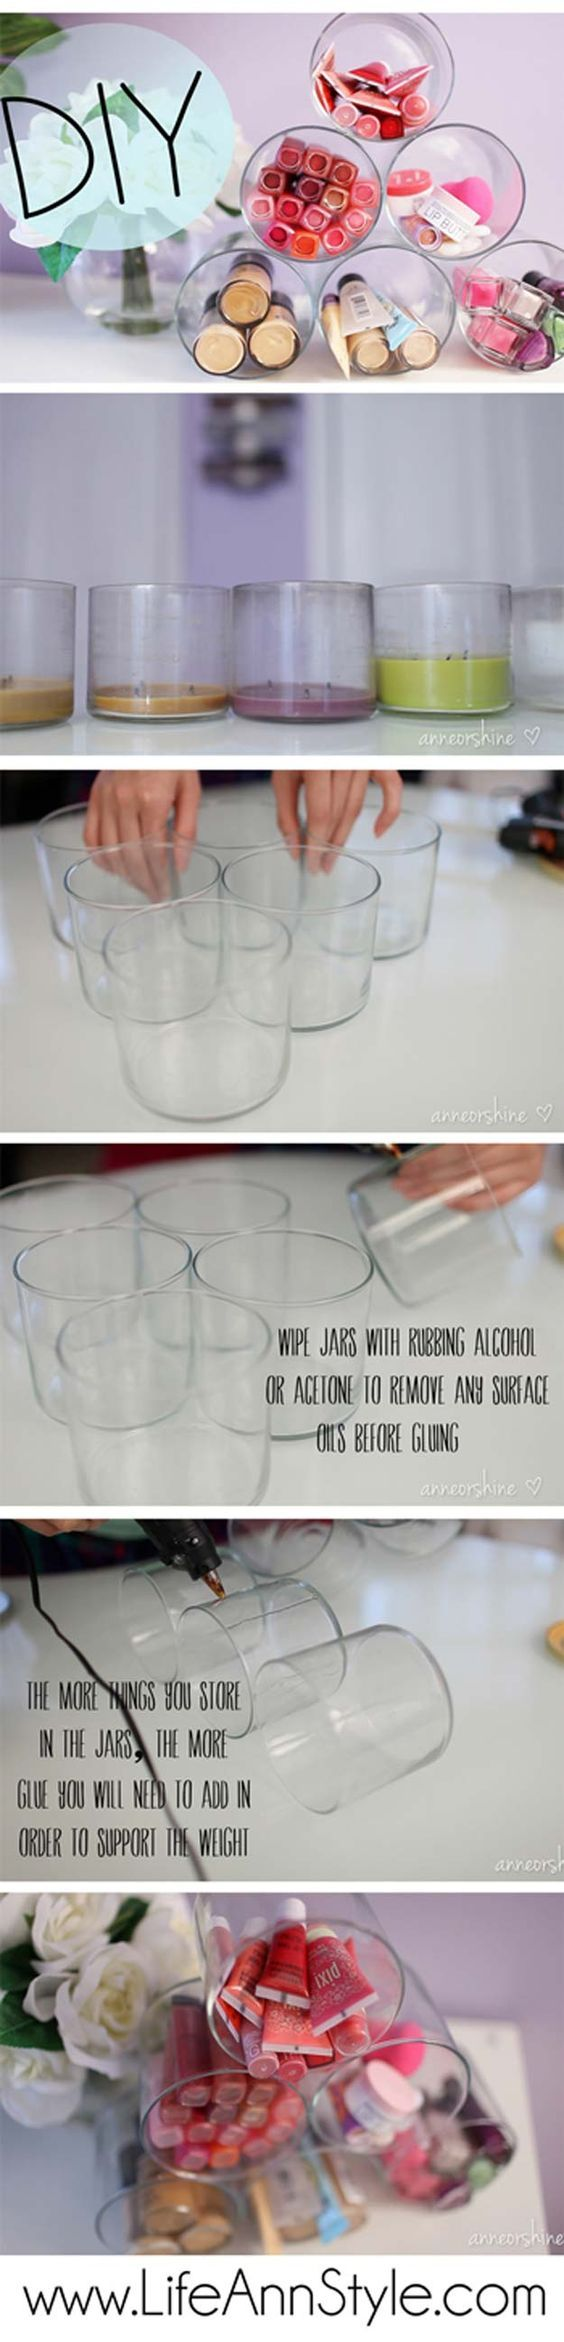 DIY Makeup Storage and Organizing - DIY: Repurposed Candle Jar Storage - Awesome Ideas and Dollar Stores Hacks for Some Seriously Great Organizers For Small Spaces - Box and Vanity Ideas as well as Easy Ideas for Jars and Drawers, Cheap Wall Shoebox Containers and Quick Holders with Cardboard - thegoddess.com/DIY-Makeup-Storage